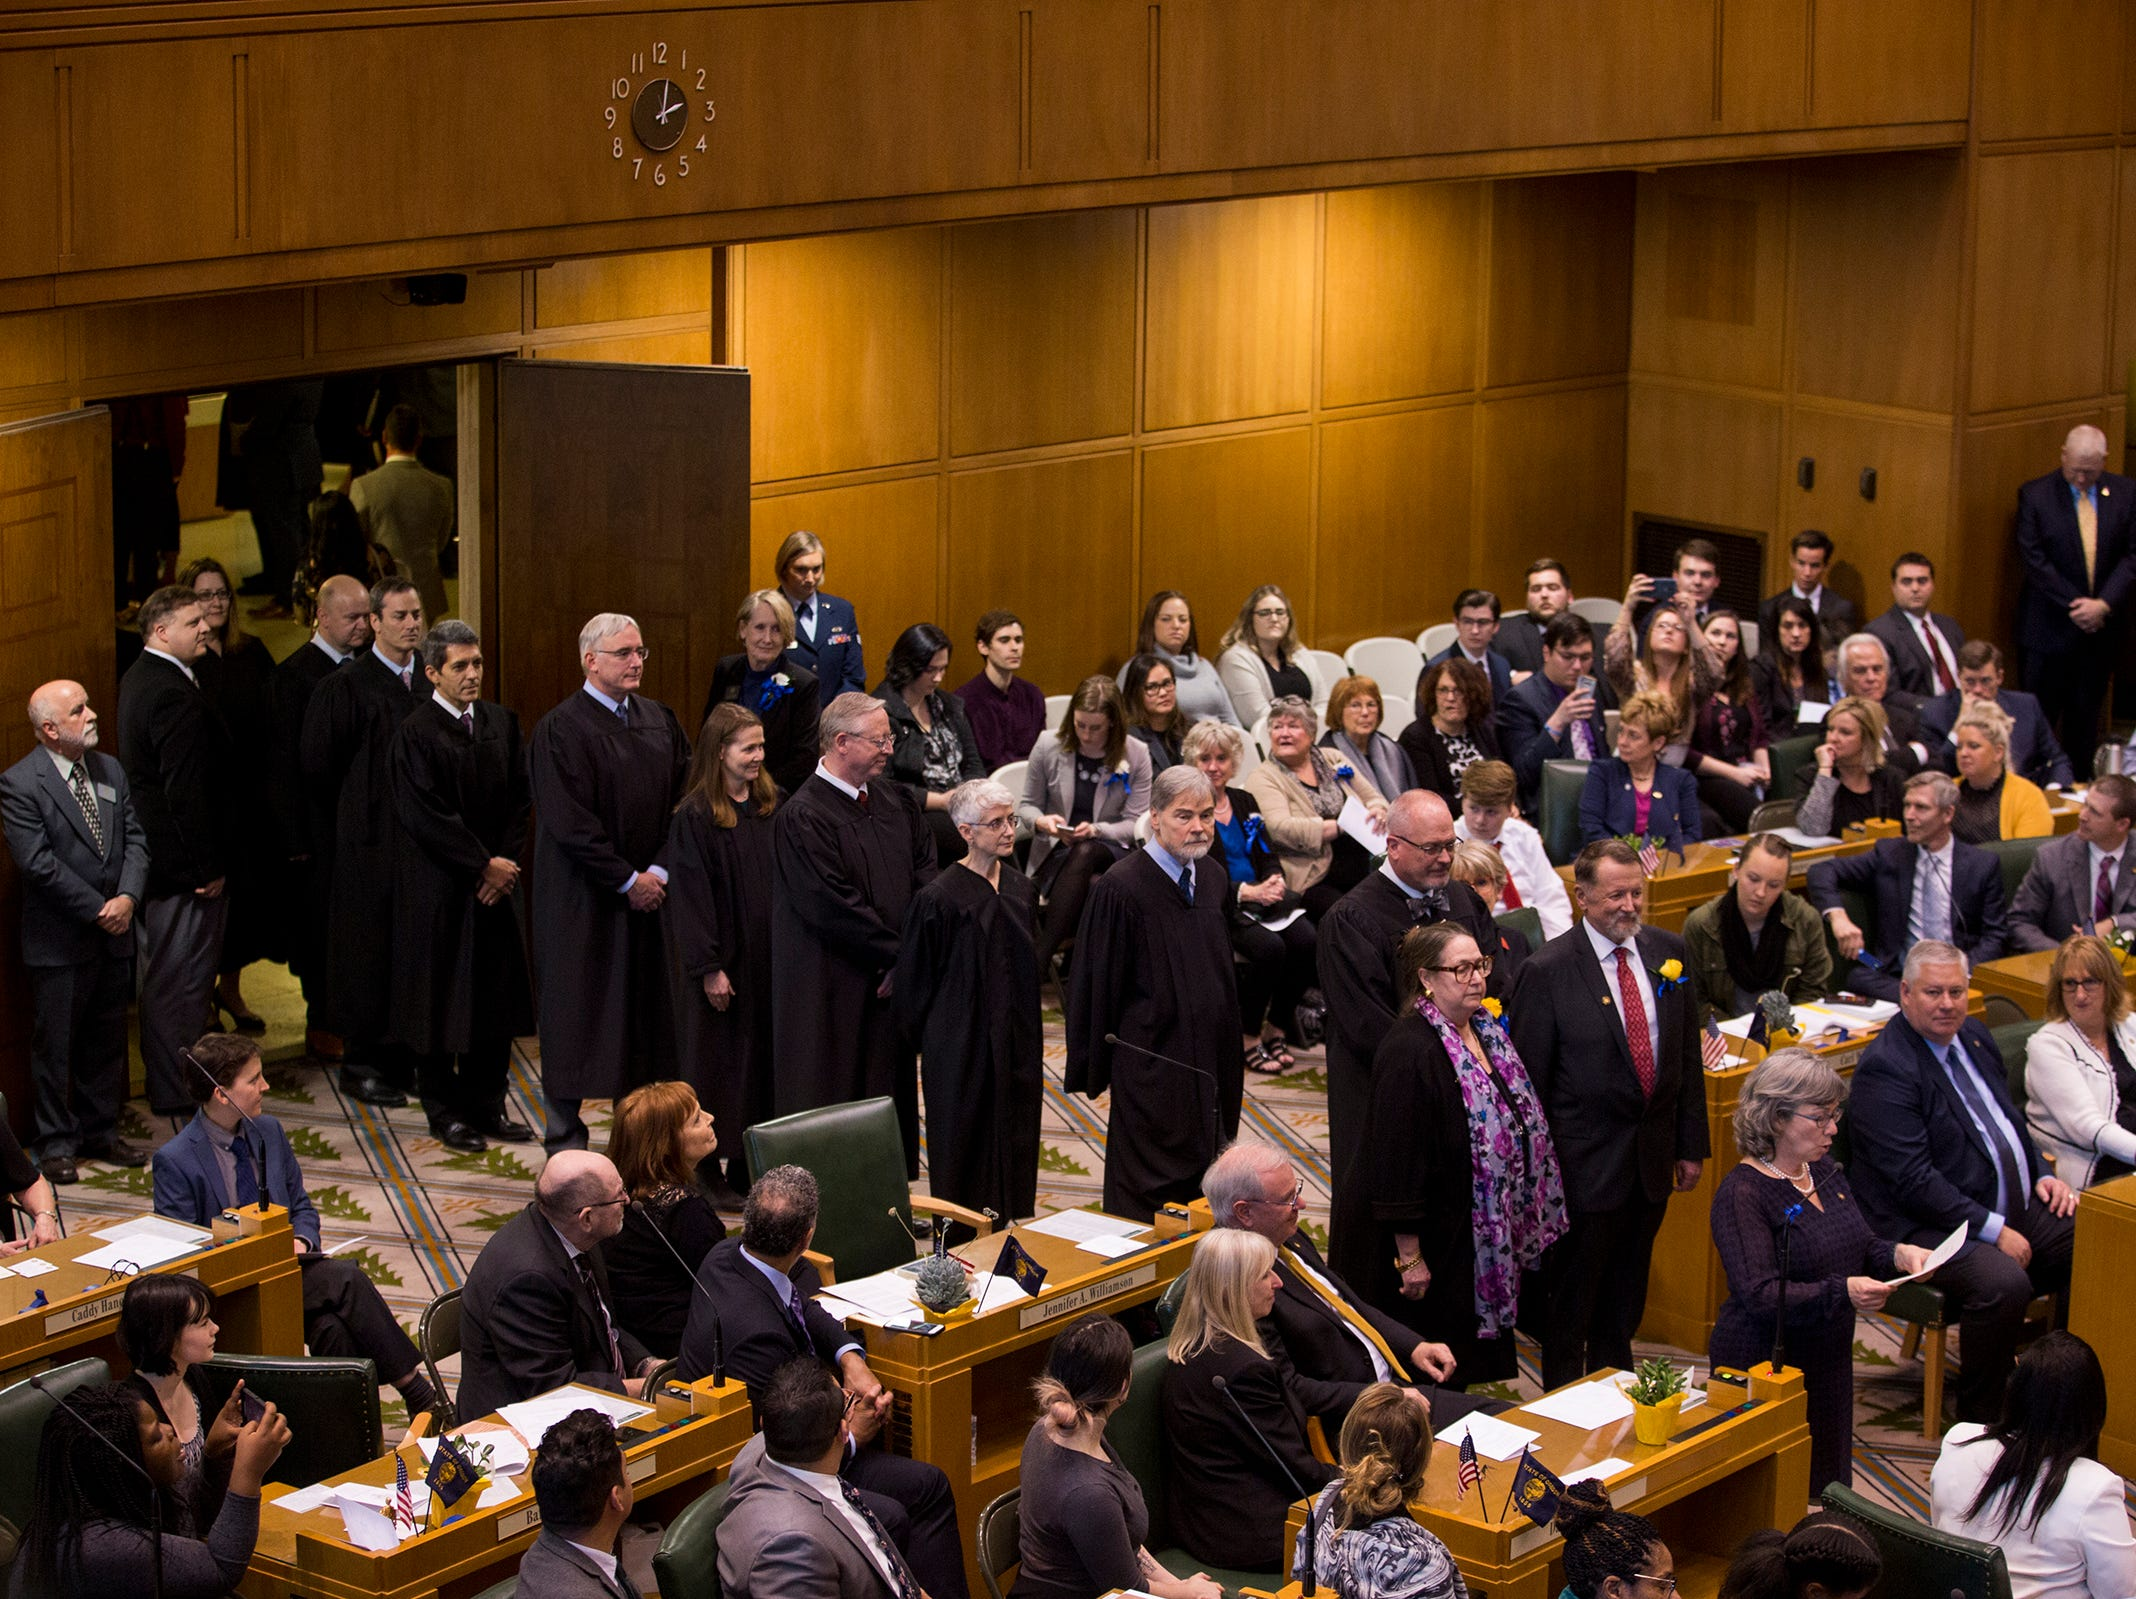 Oregon judges are escorted into Governor Kate Brown's inaugural address at the Oregon State Capitol on Jan. 14, 2019.